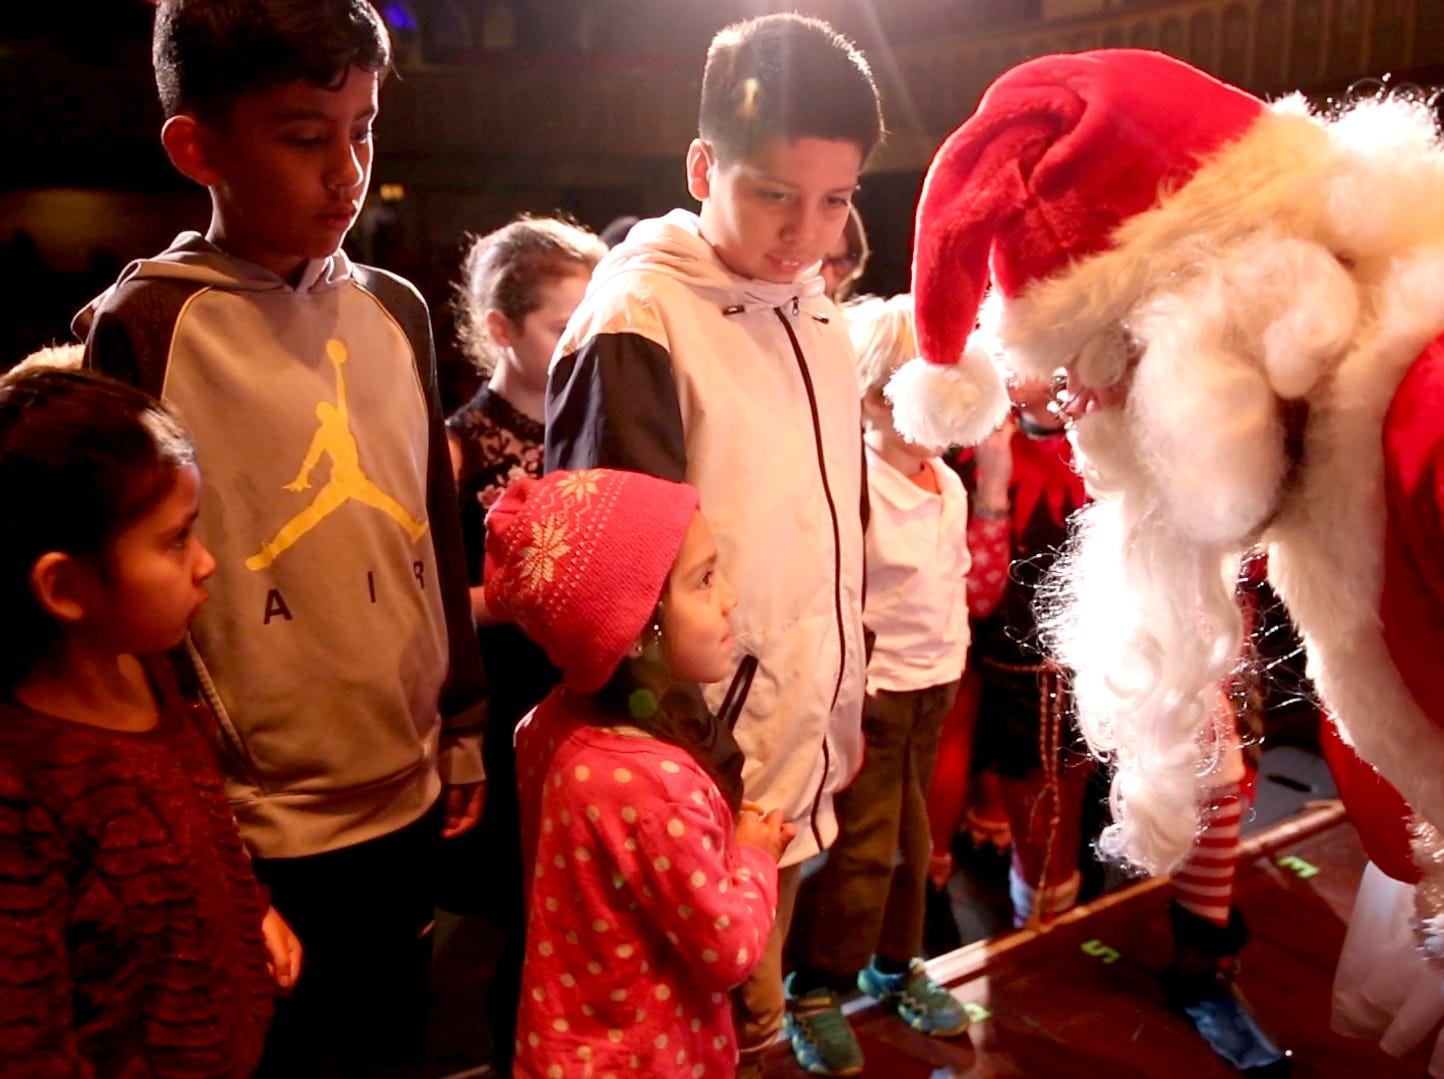 Santa Claus greets siblings Emma Gonzalez and Emiliano Gonzalez at the 78th annual children's holiday party at the Elsinore Theatre on Saturday, Dec. 1, 2018. The party included holiday music and a visit from Santa.